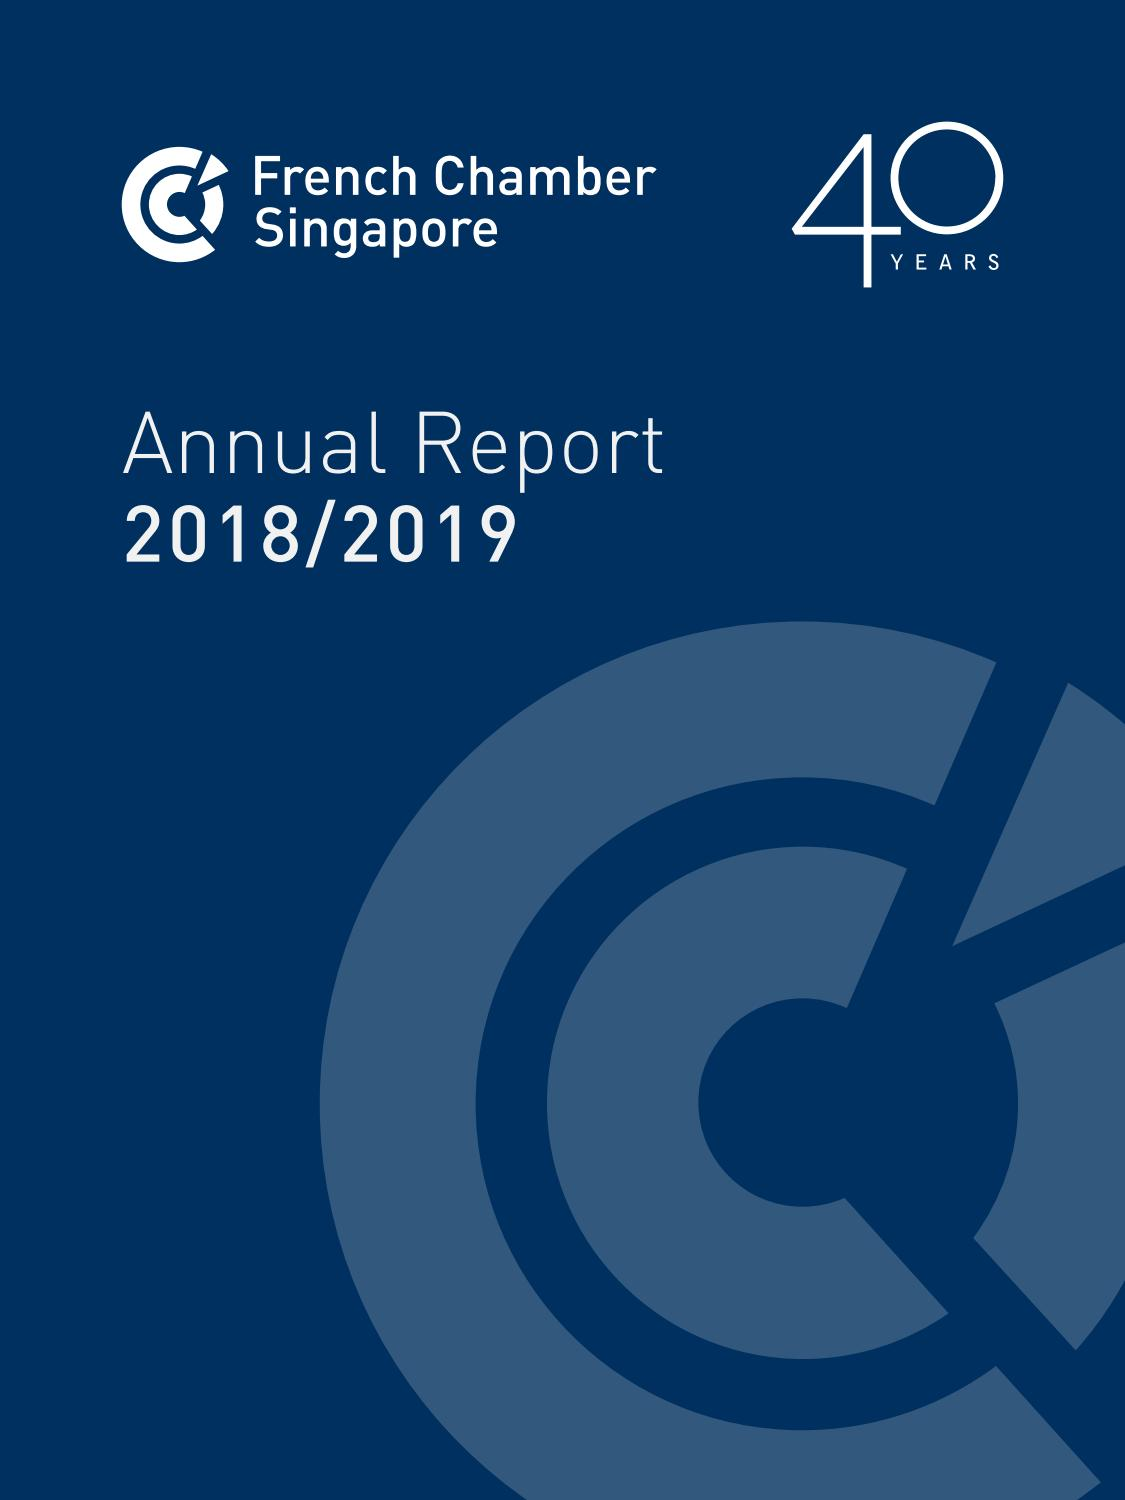 Table De Jardin Promo Luxe French Chamber Singapore Annual Report 2018 2019 by the Of 29 Génial Table De Jardin Promo